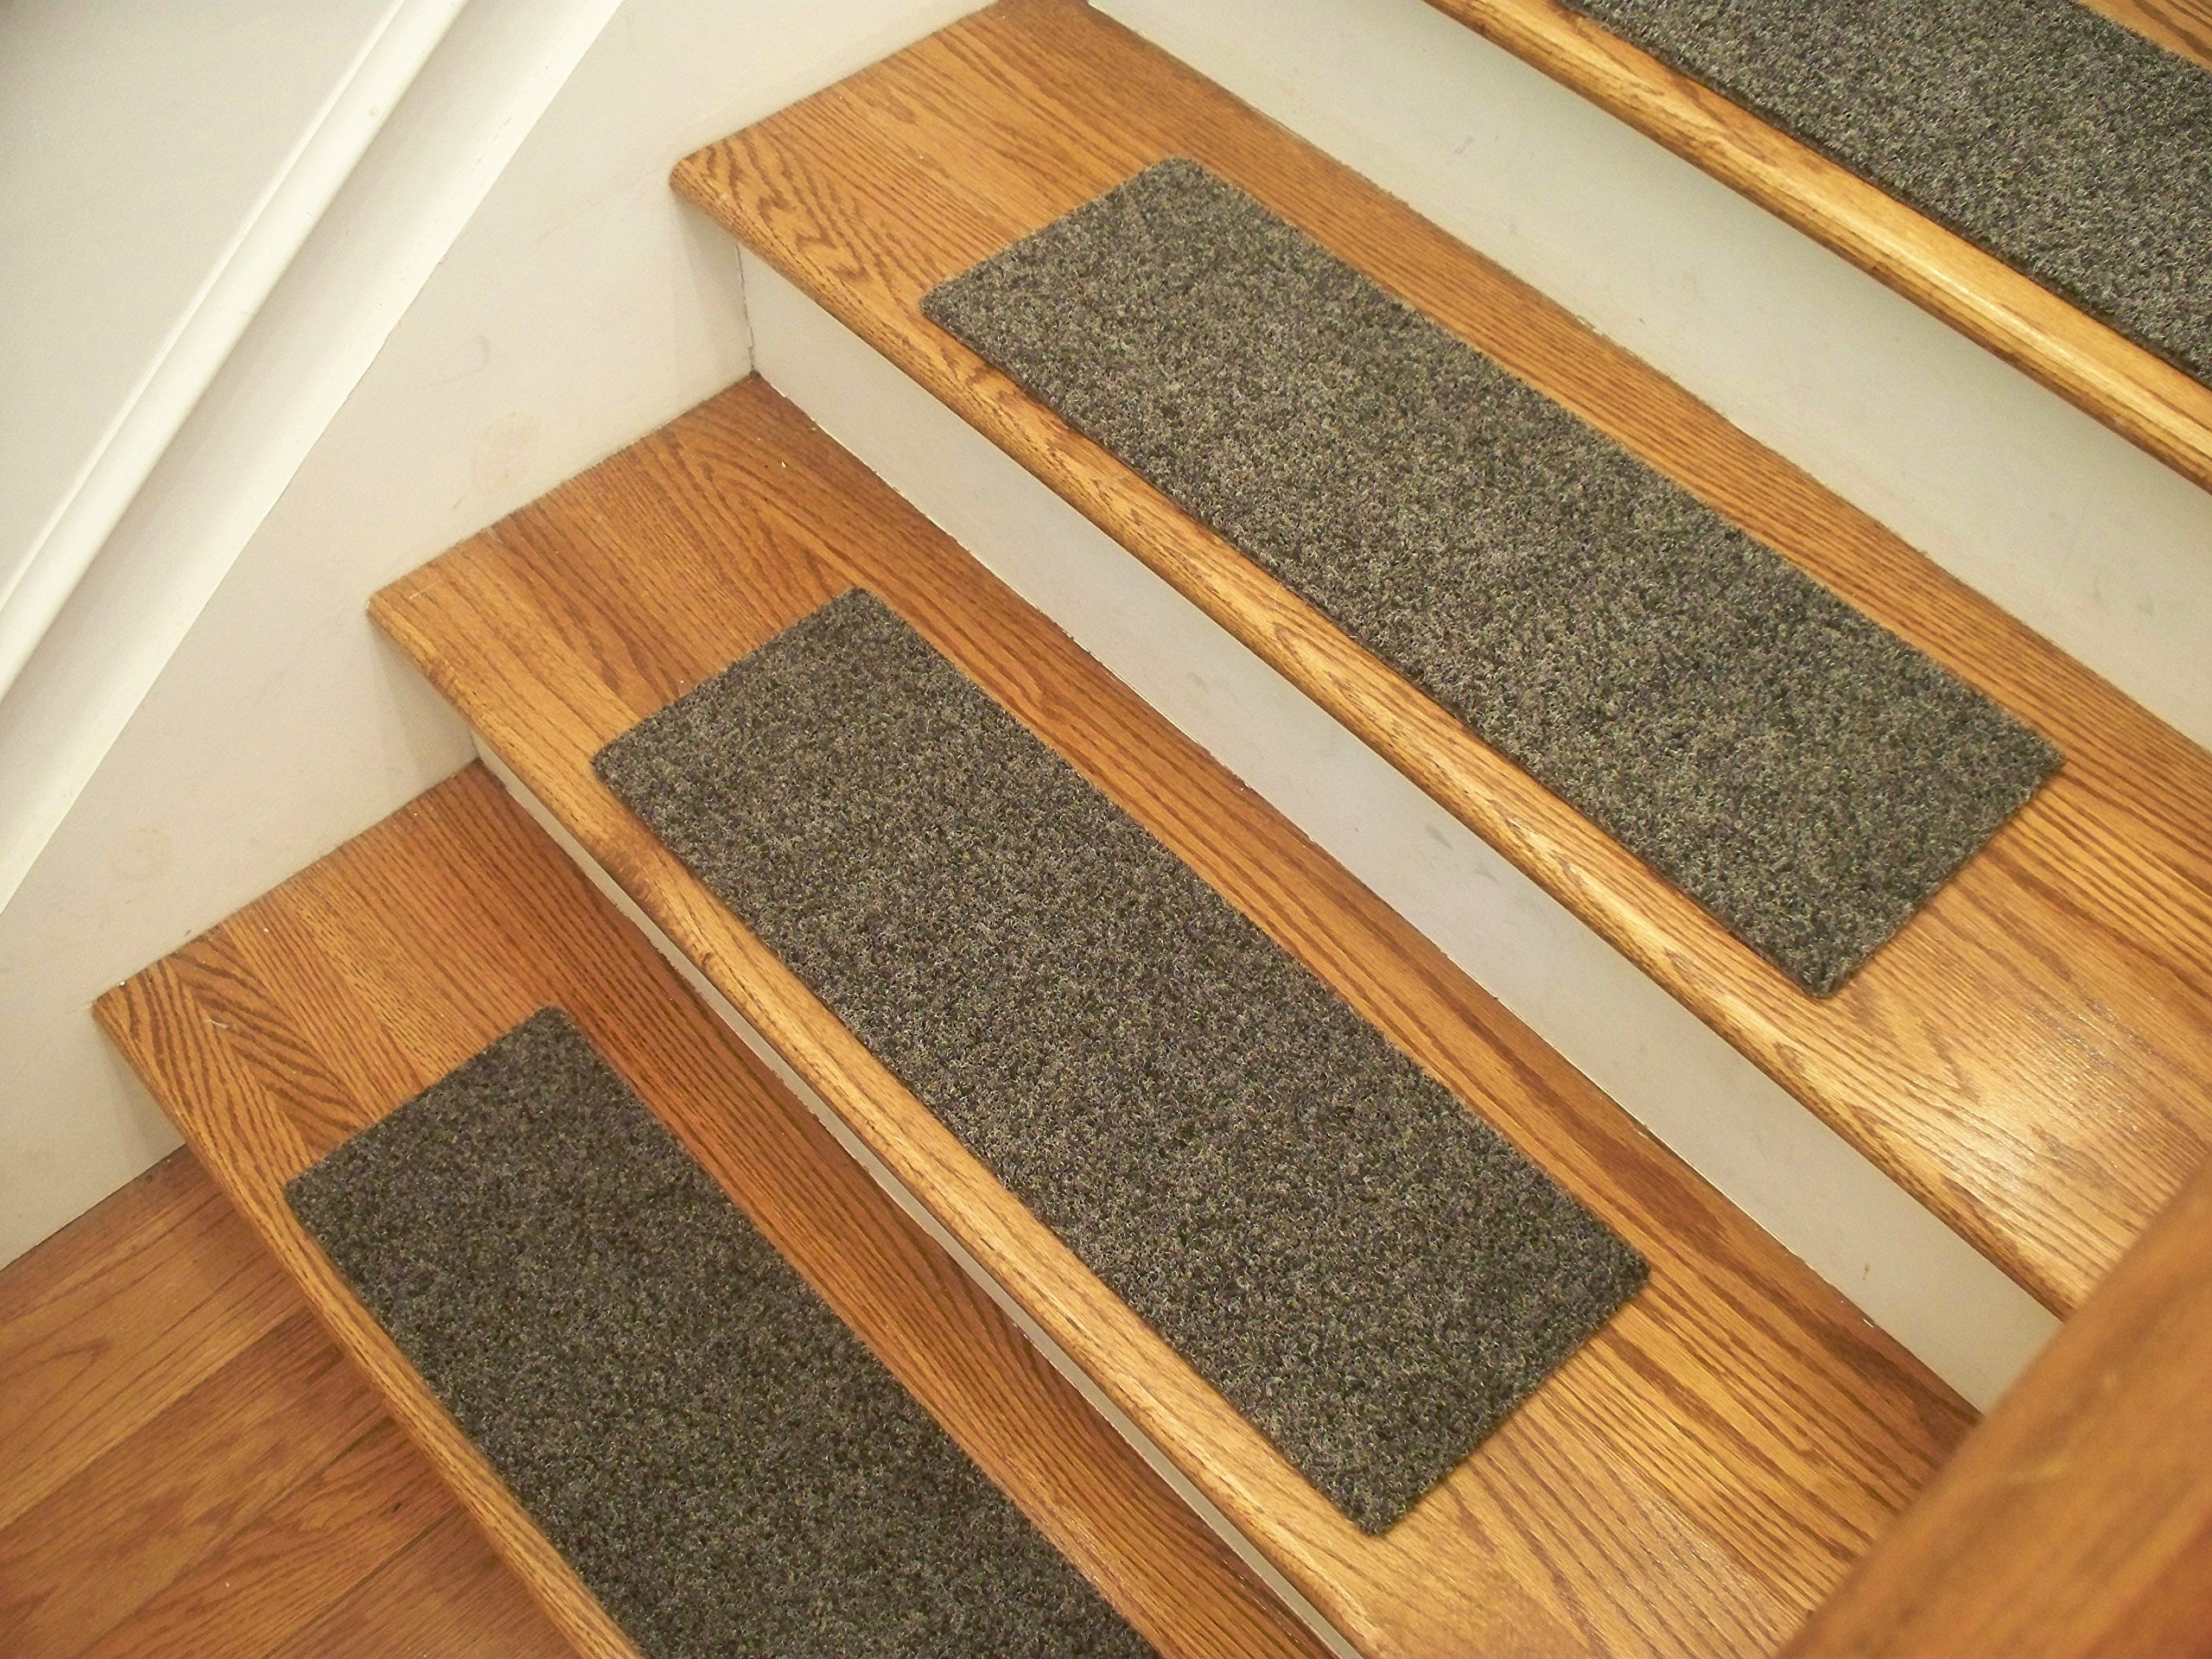 Essential Carpet Stair Treads - Style: Brush - Color: Graphite Gray - Size: 24'' x 8'' - Set of 4